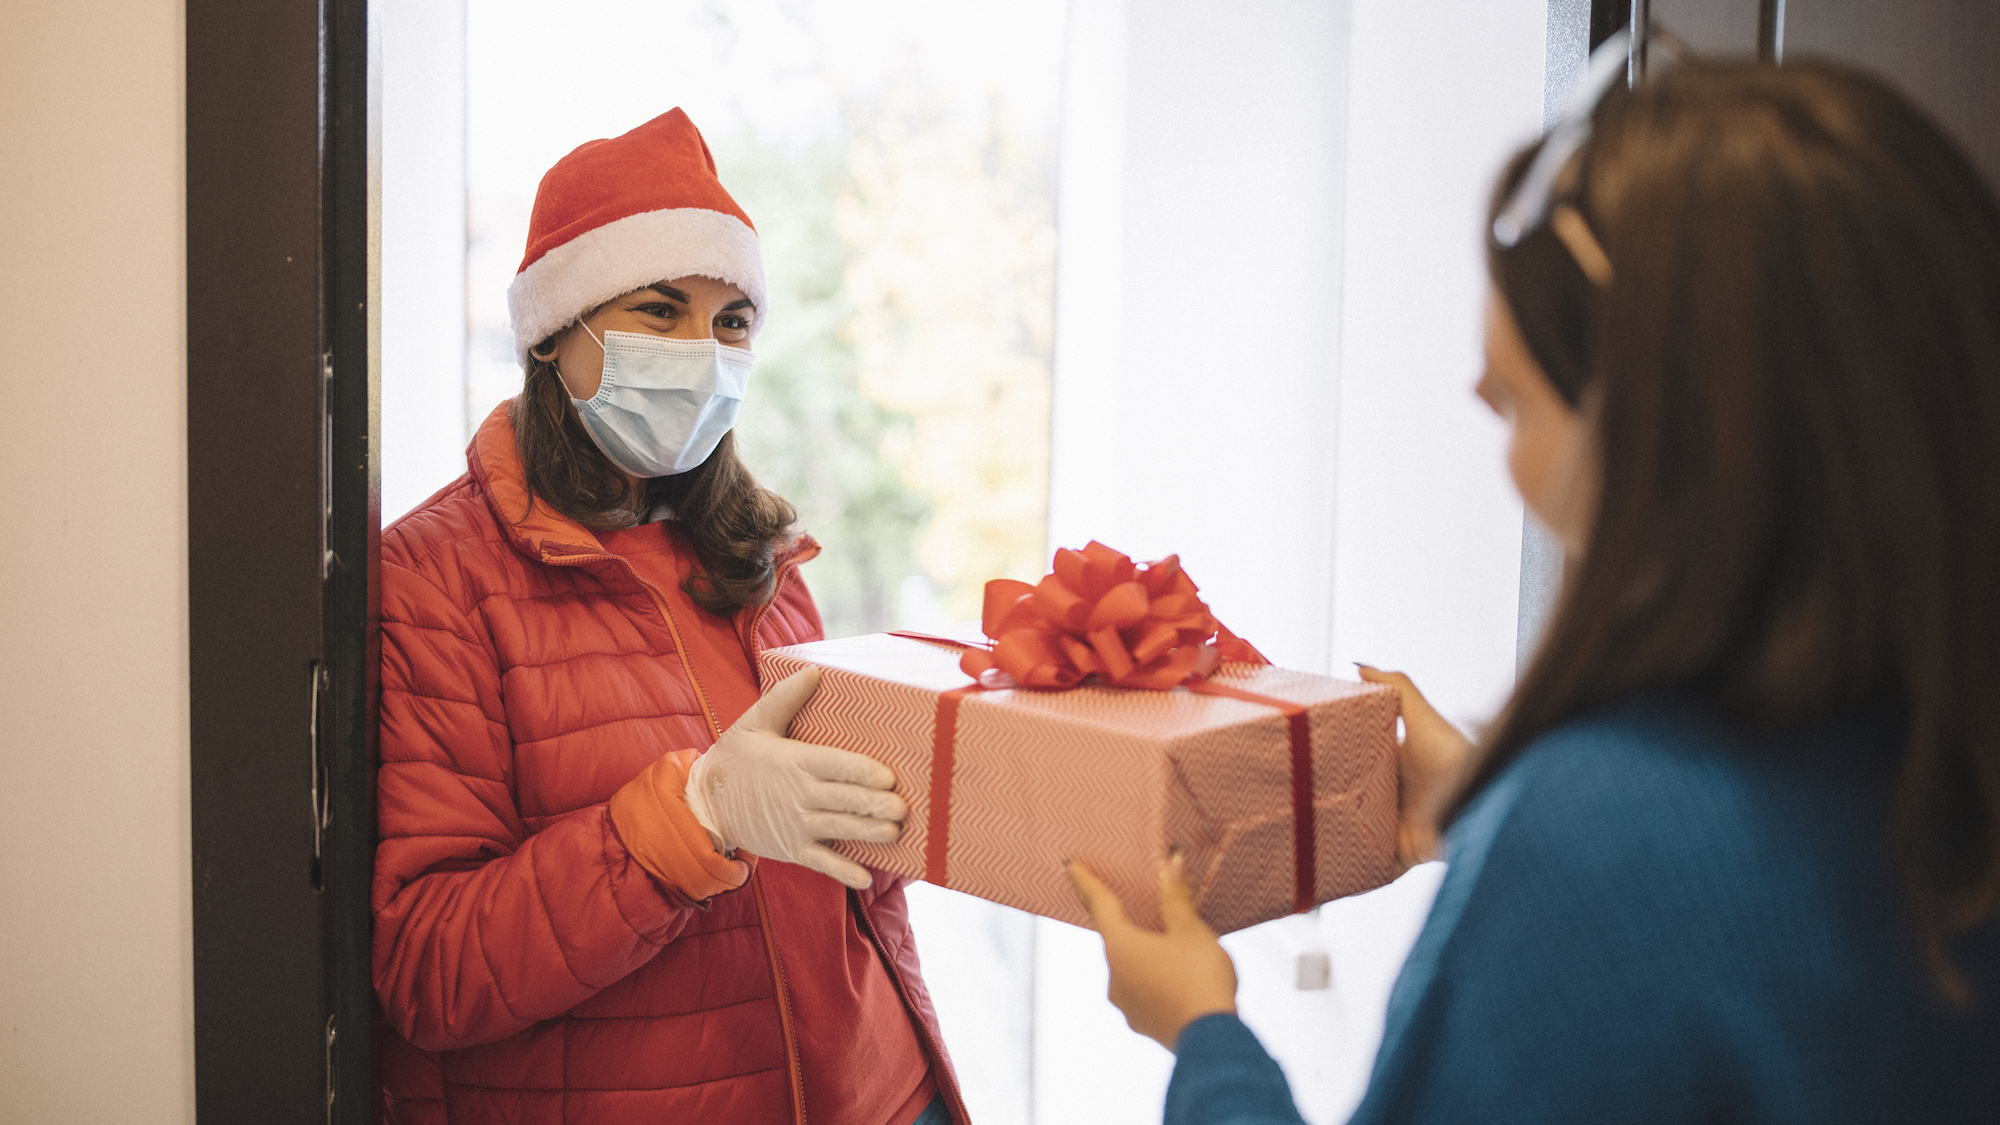 essential worker gifts